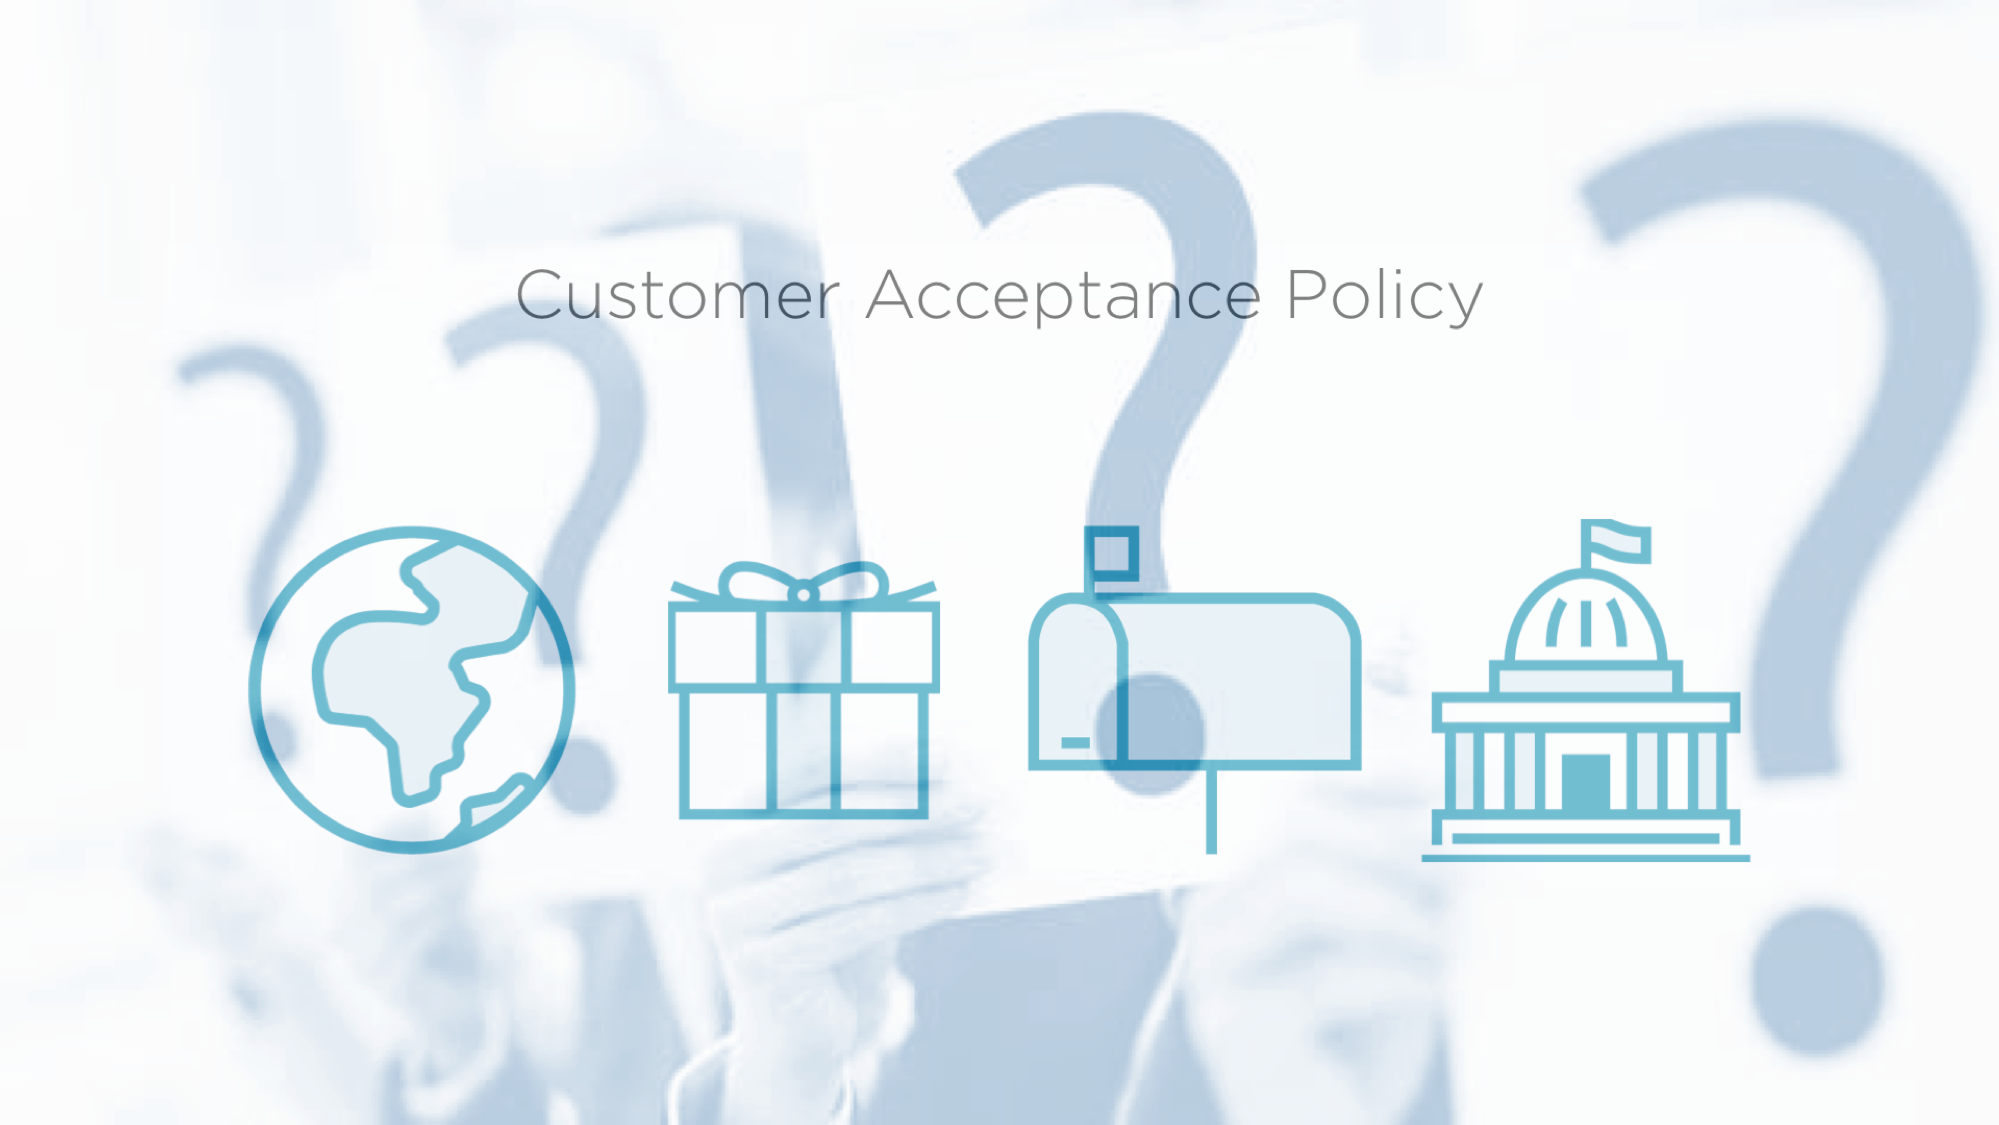 Customer Acceptance Policy